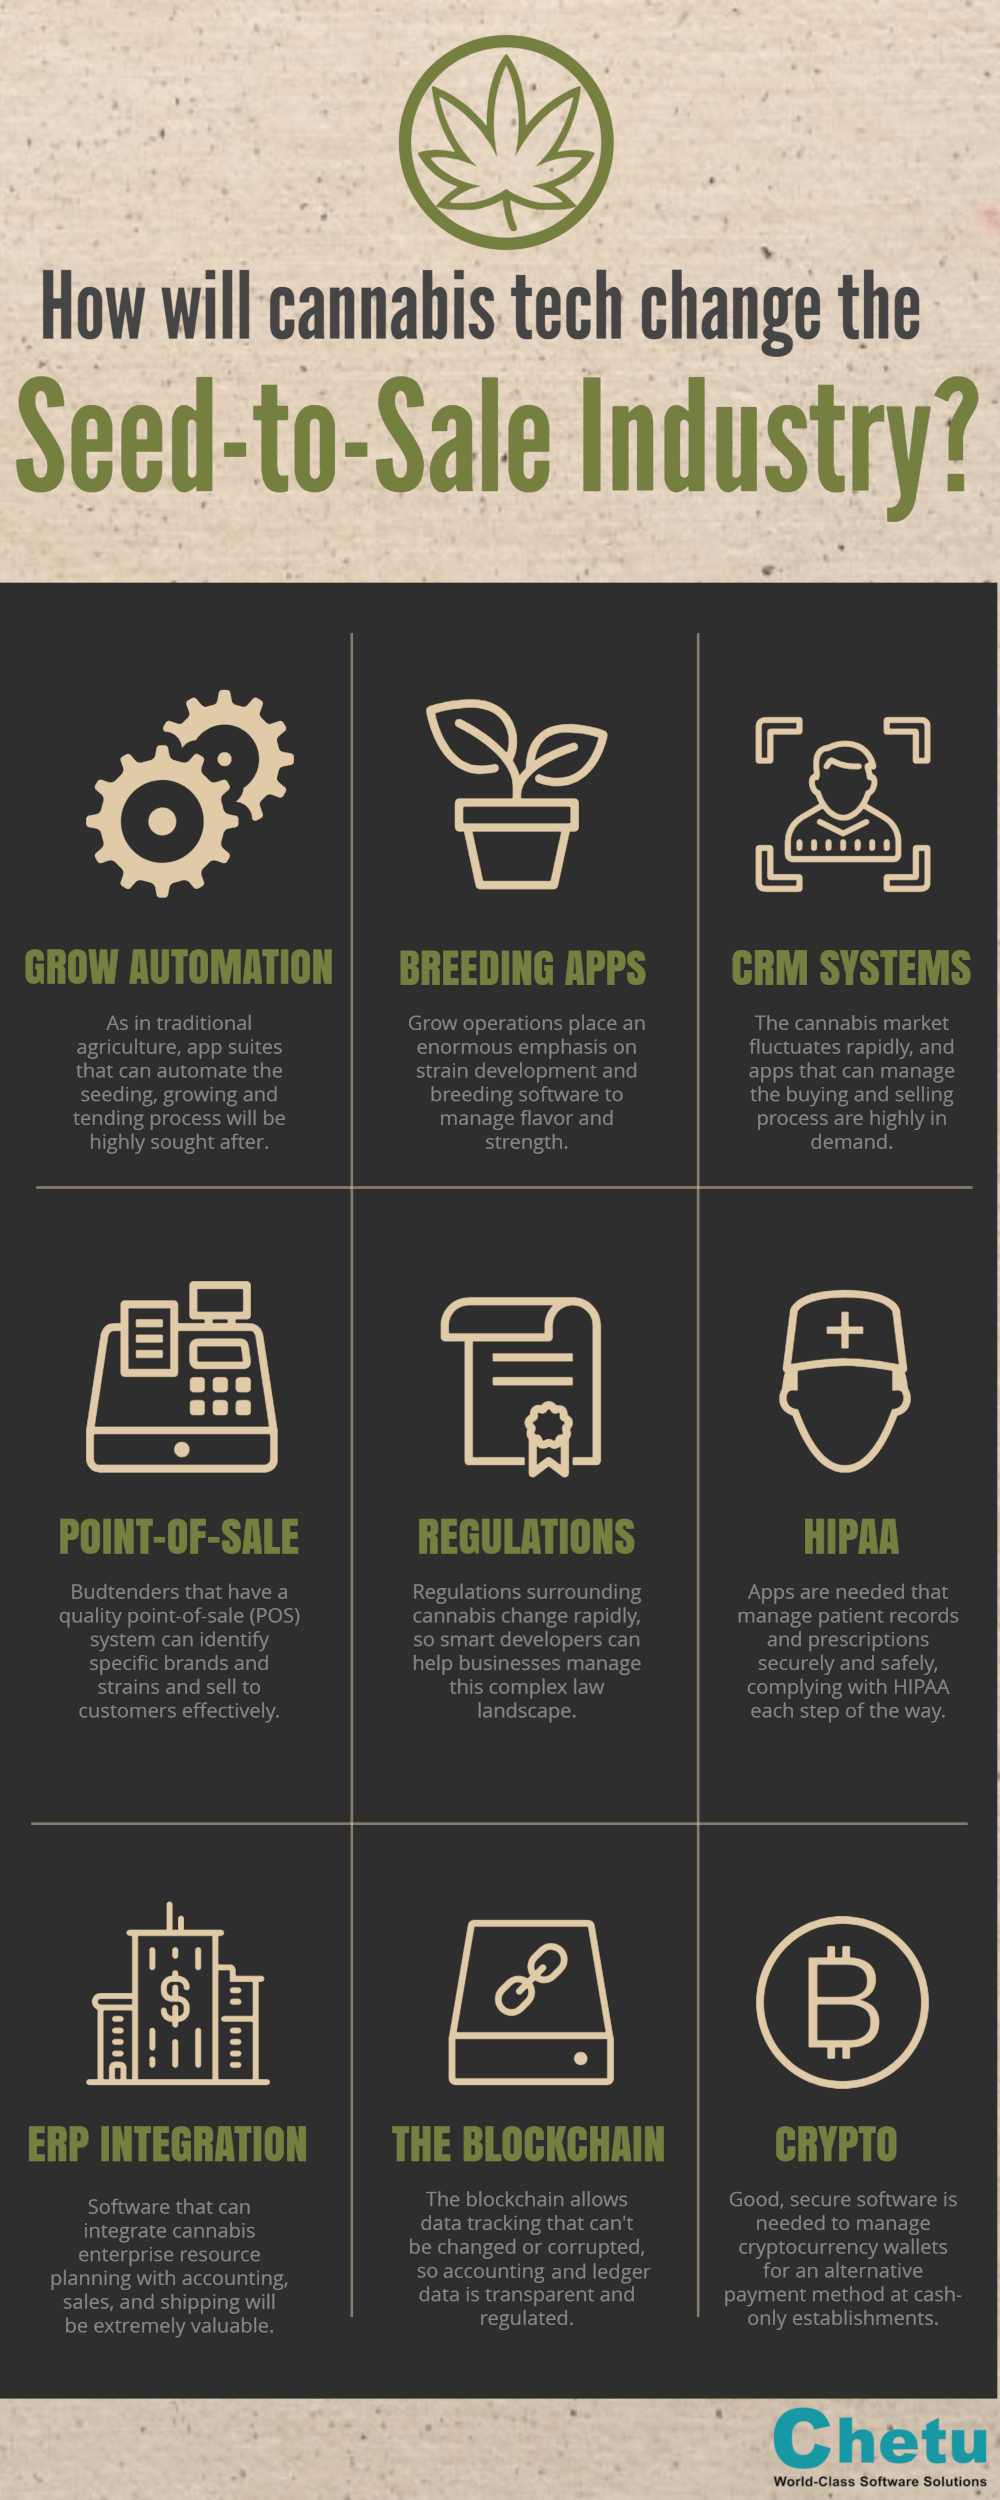 Seed-to-Sale Industry